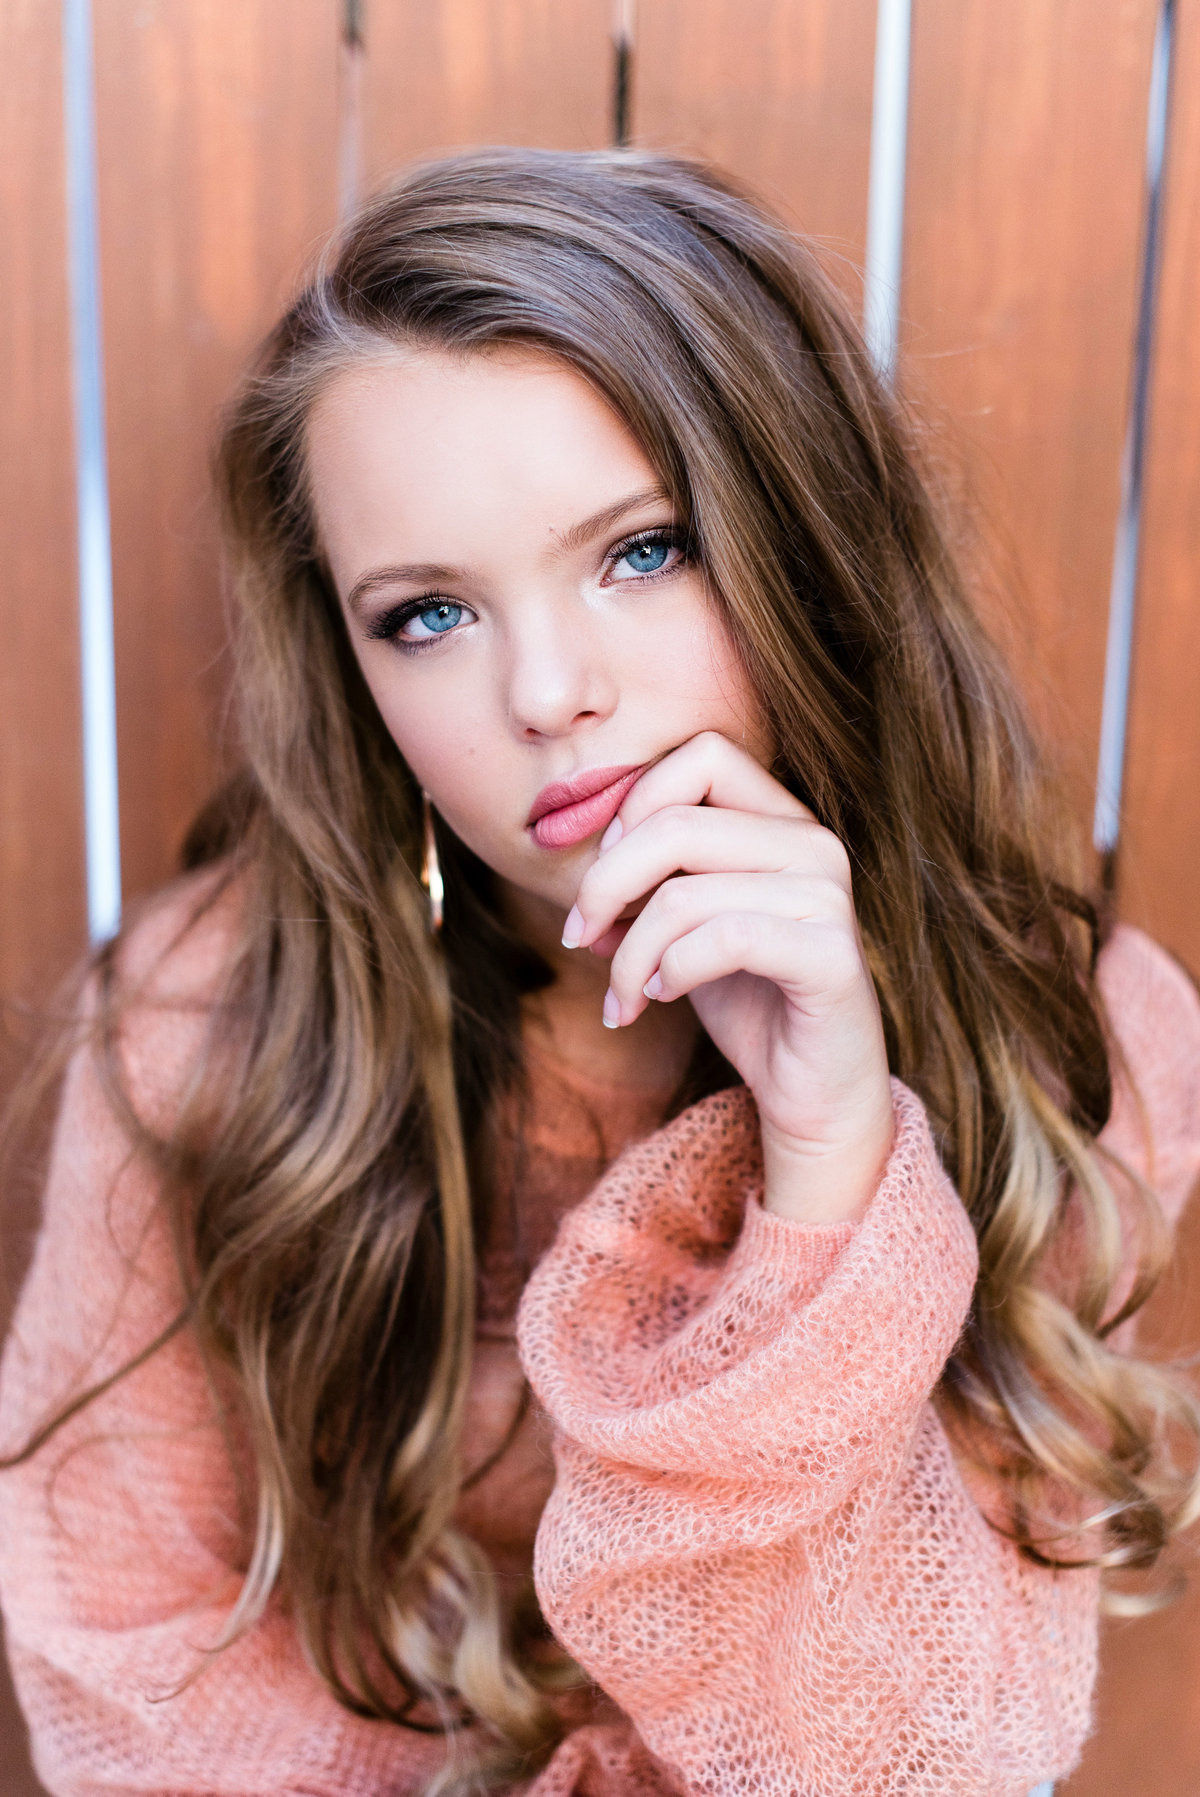 alpharetta-editorial-photography-girls-101